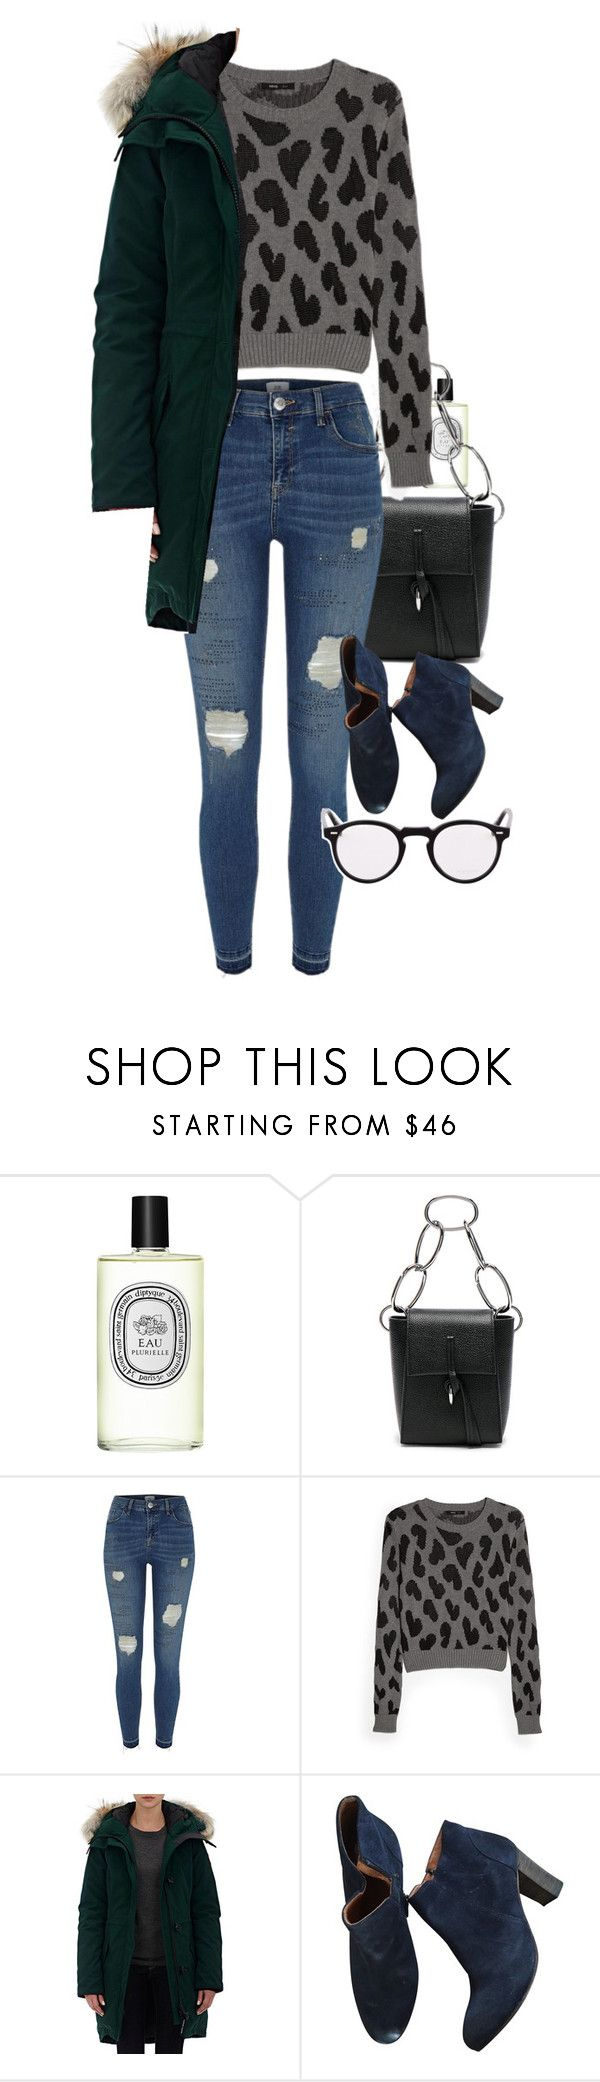 """Untitled #7123"" by ashley-r0se-xo ❤ liked on Polyvore featuring Diptyque, 3.1 Phillip Lim, River Island, MANGO, Canada Goose and Oliver Peoples"